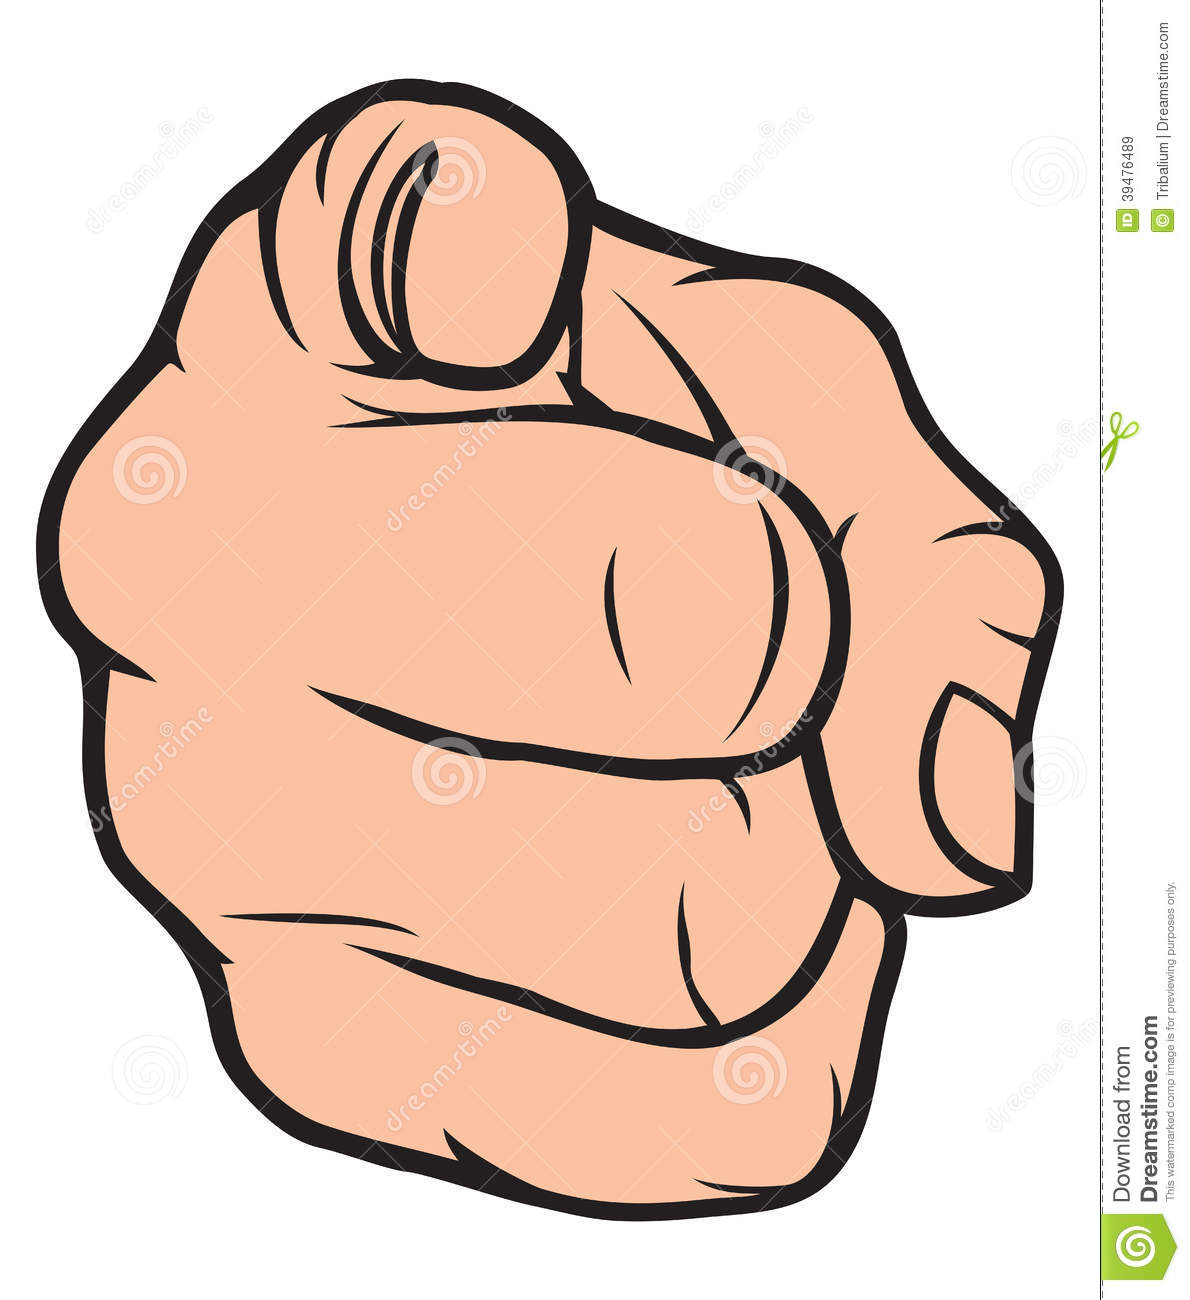 clipart man pointing finger - photo #23